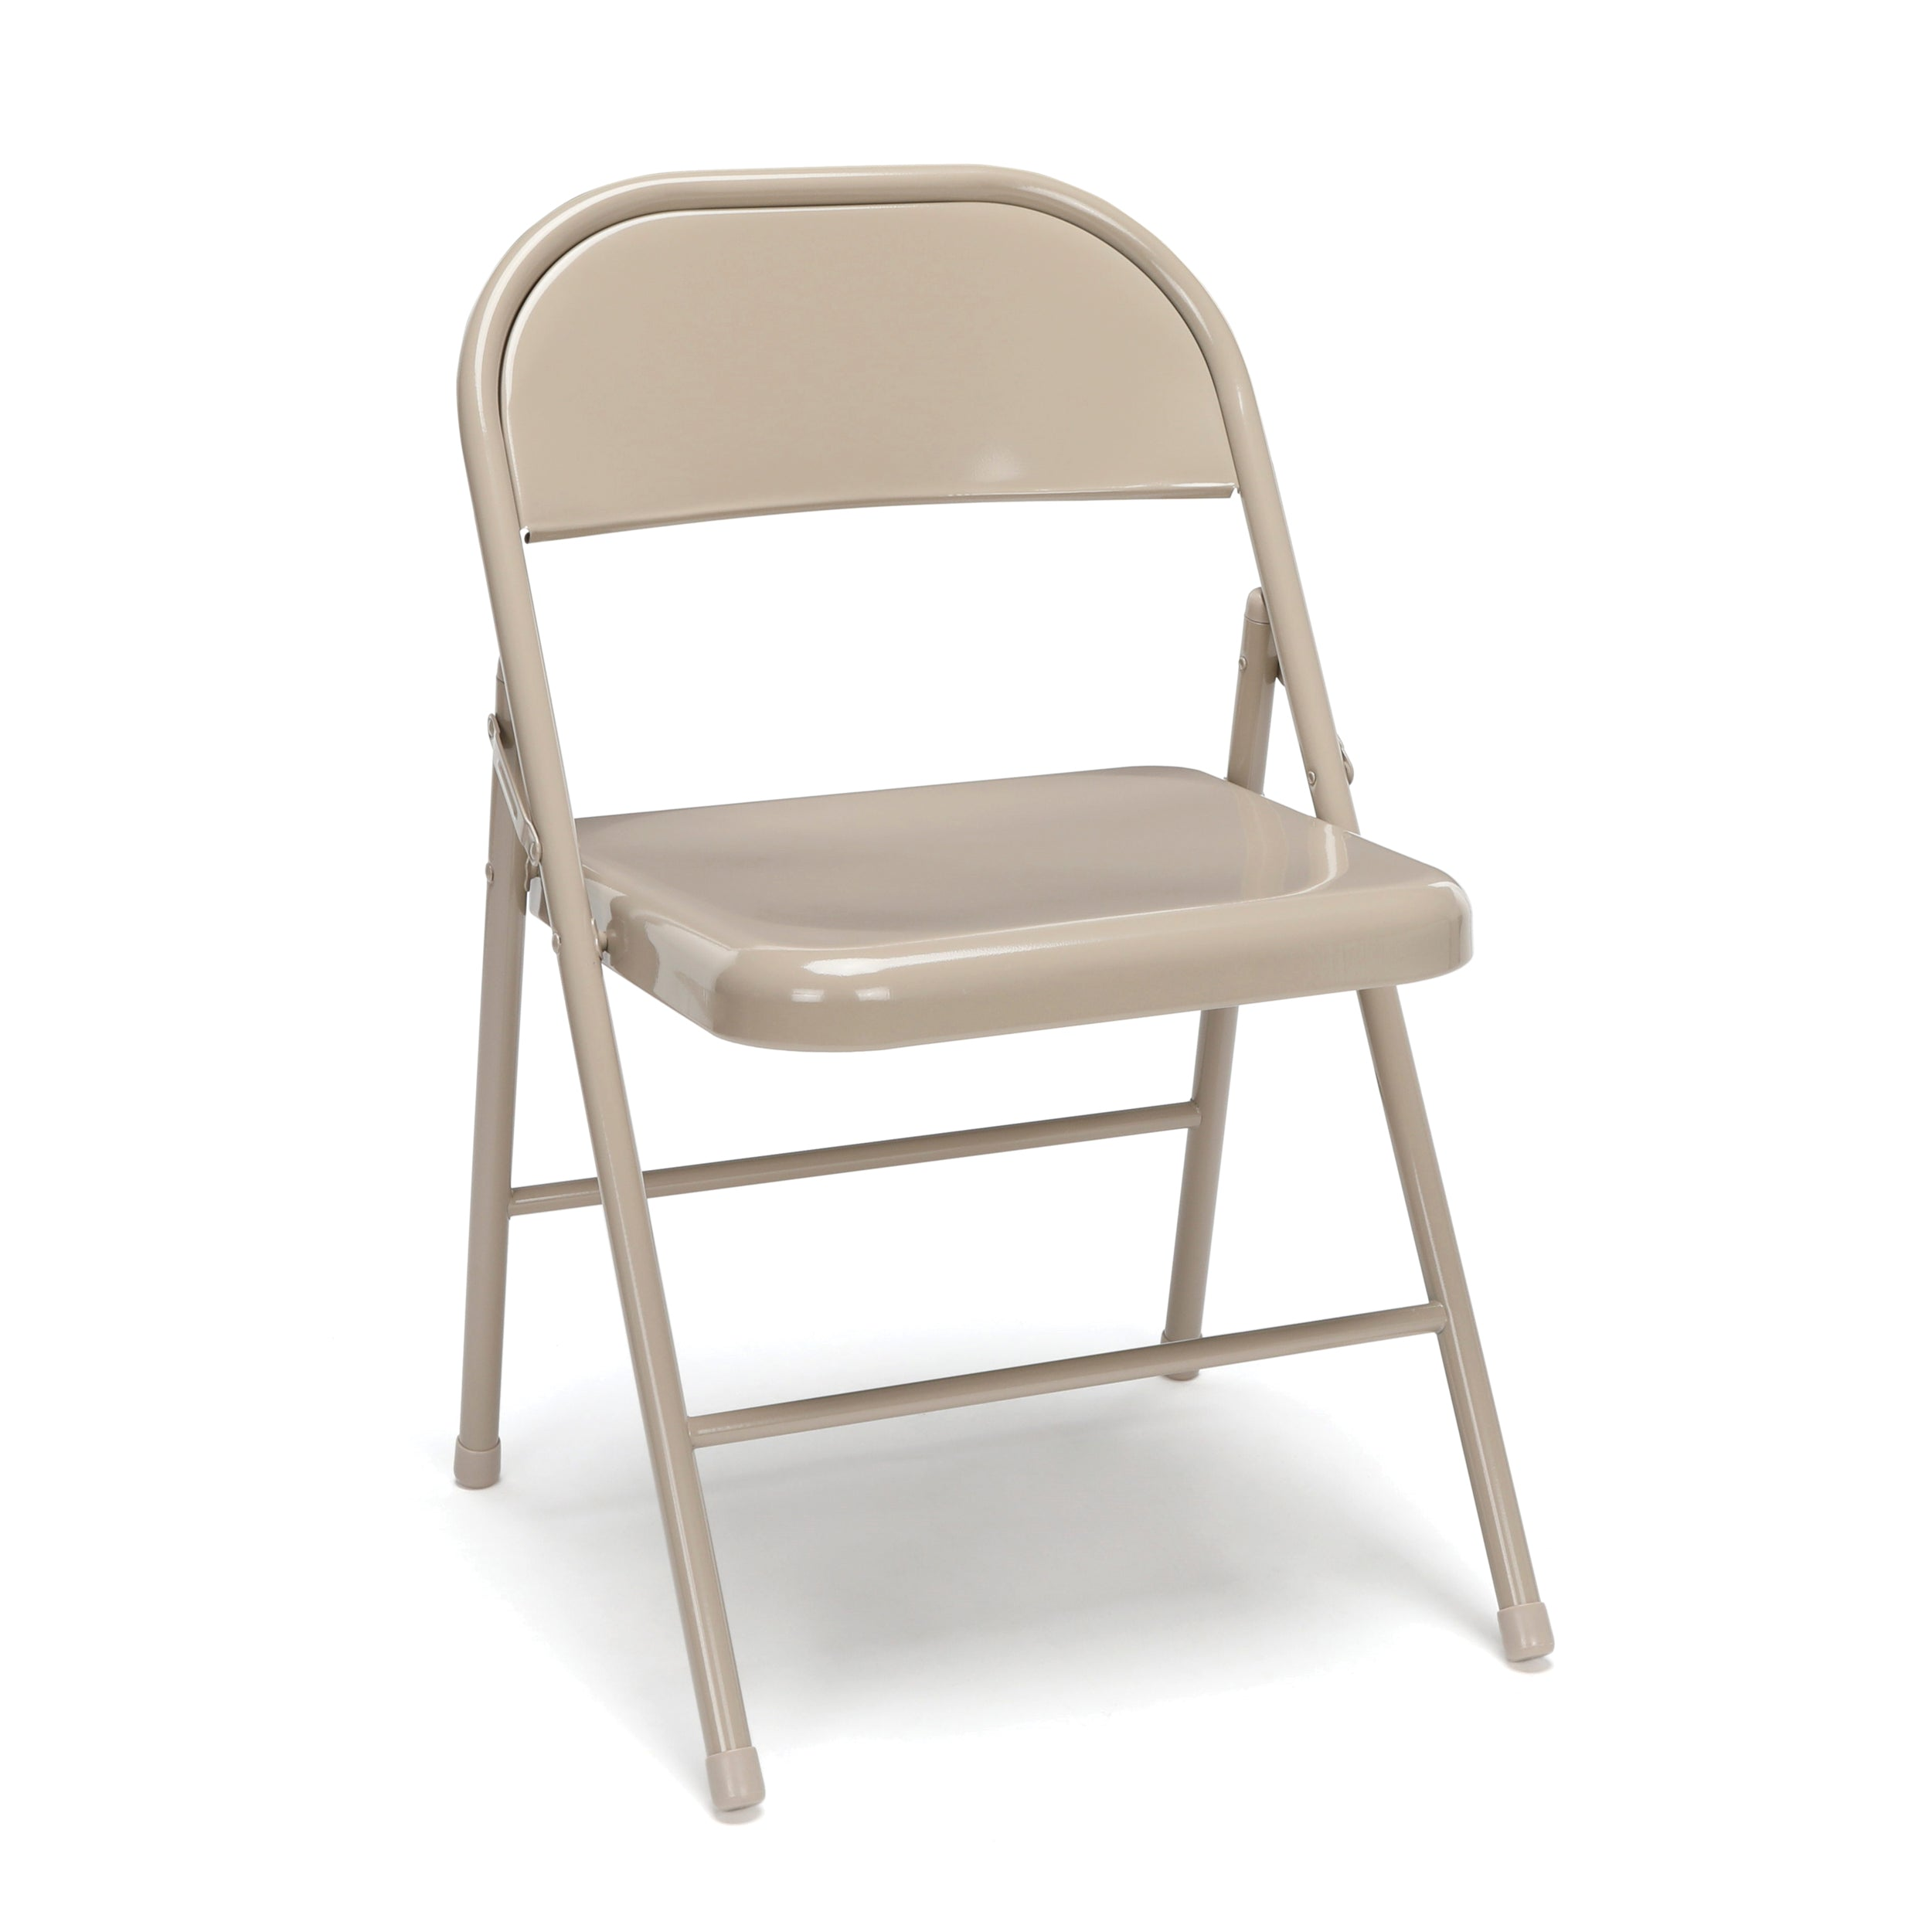 Model ESS-8200 Essentials By OFM 4-Pack Metal Folding Chairs